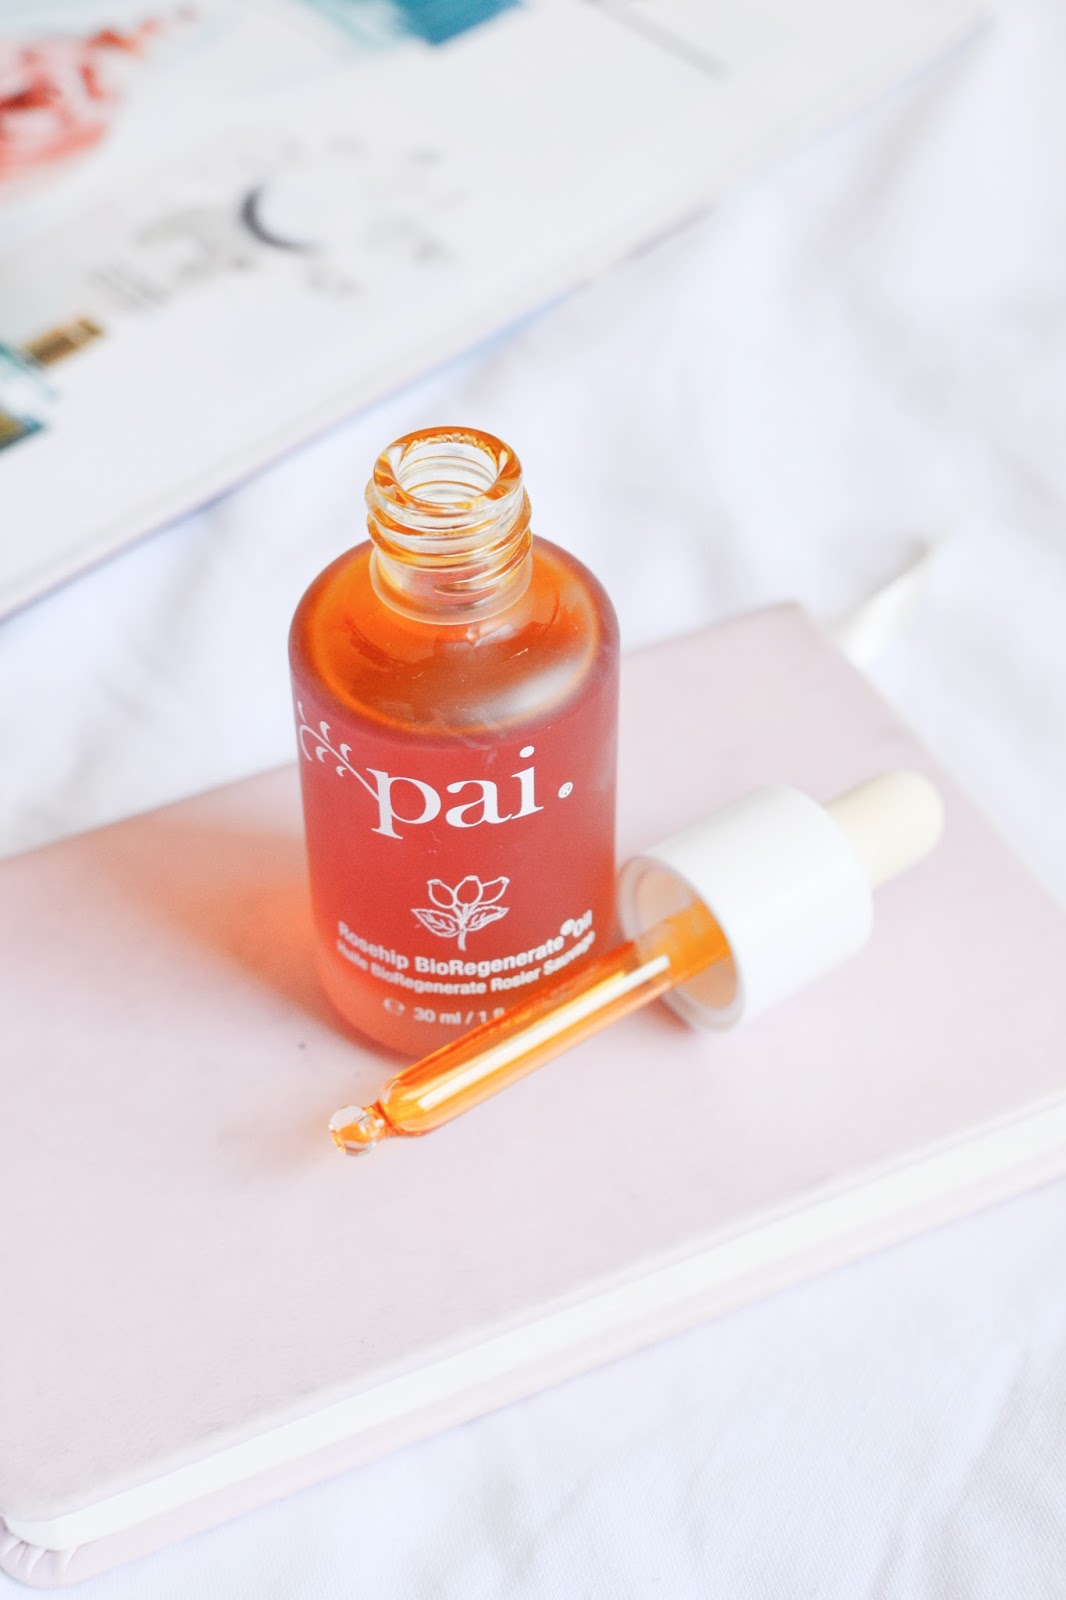 pai rose hip oil review